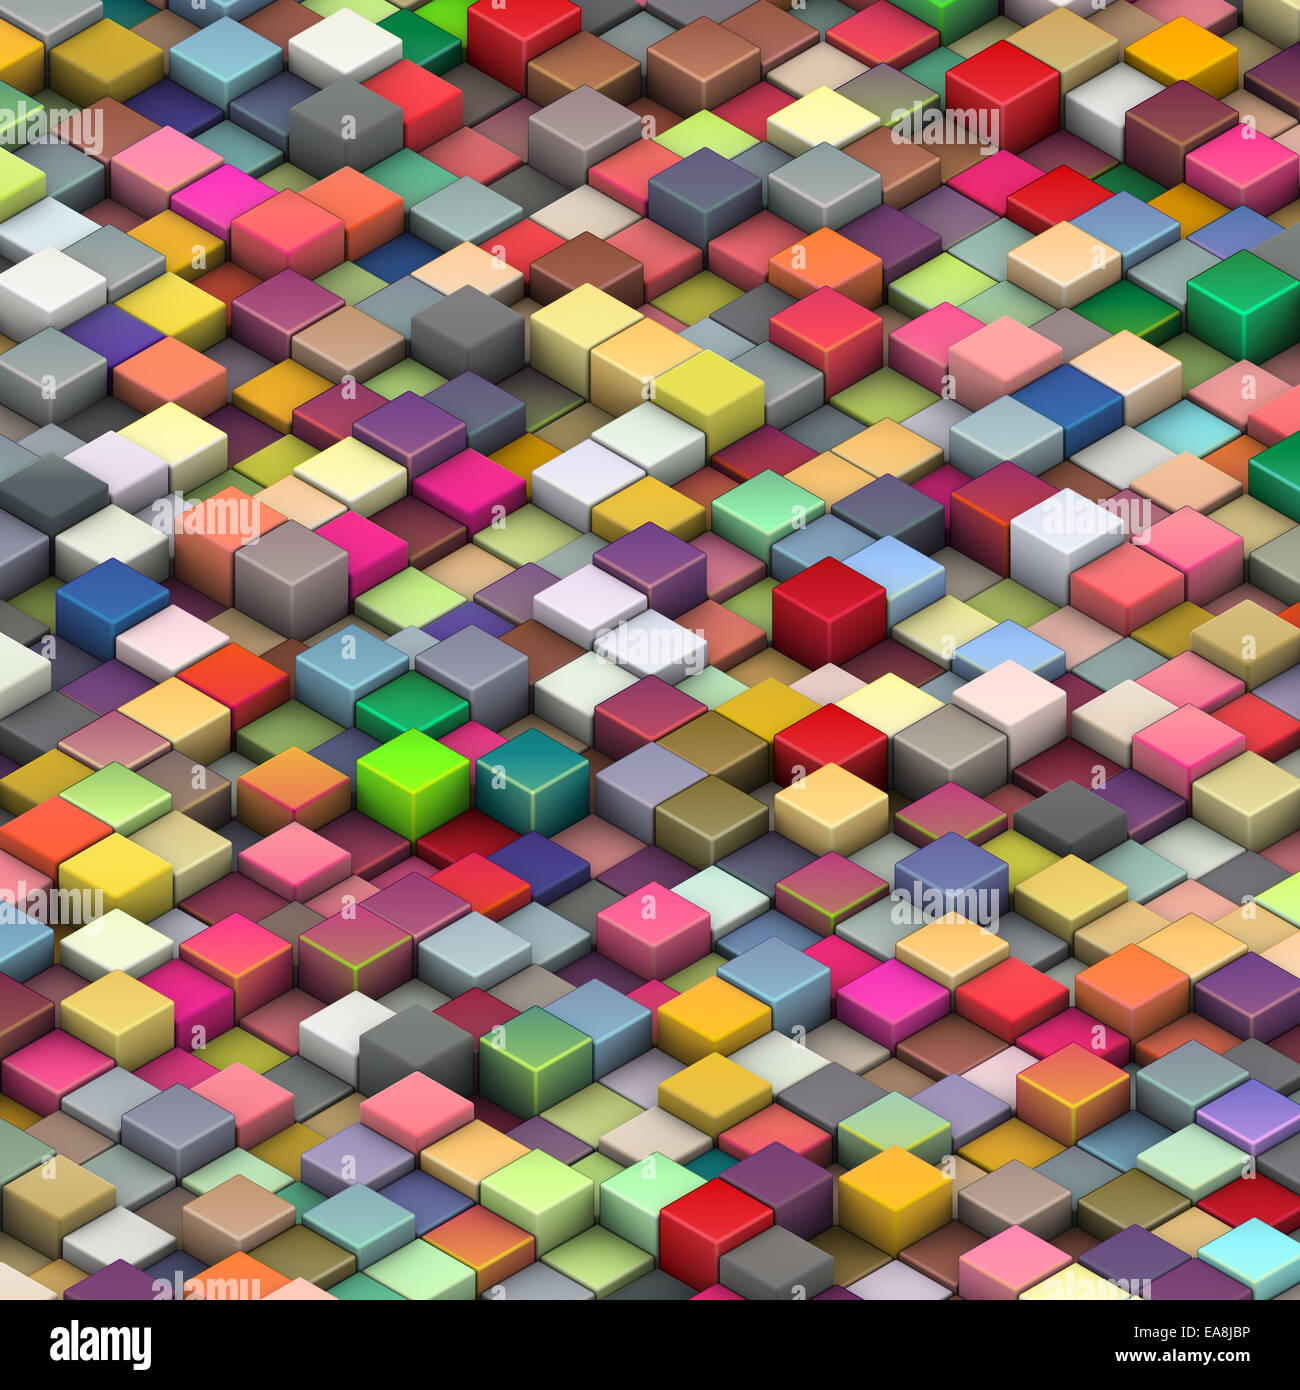 3d beveled cubes in multiple bright colors - Stock Image